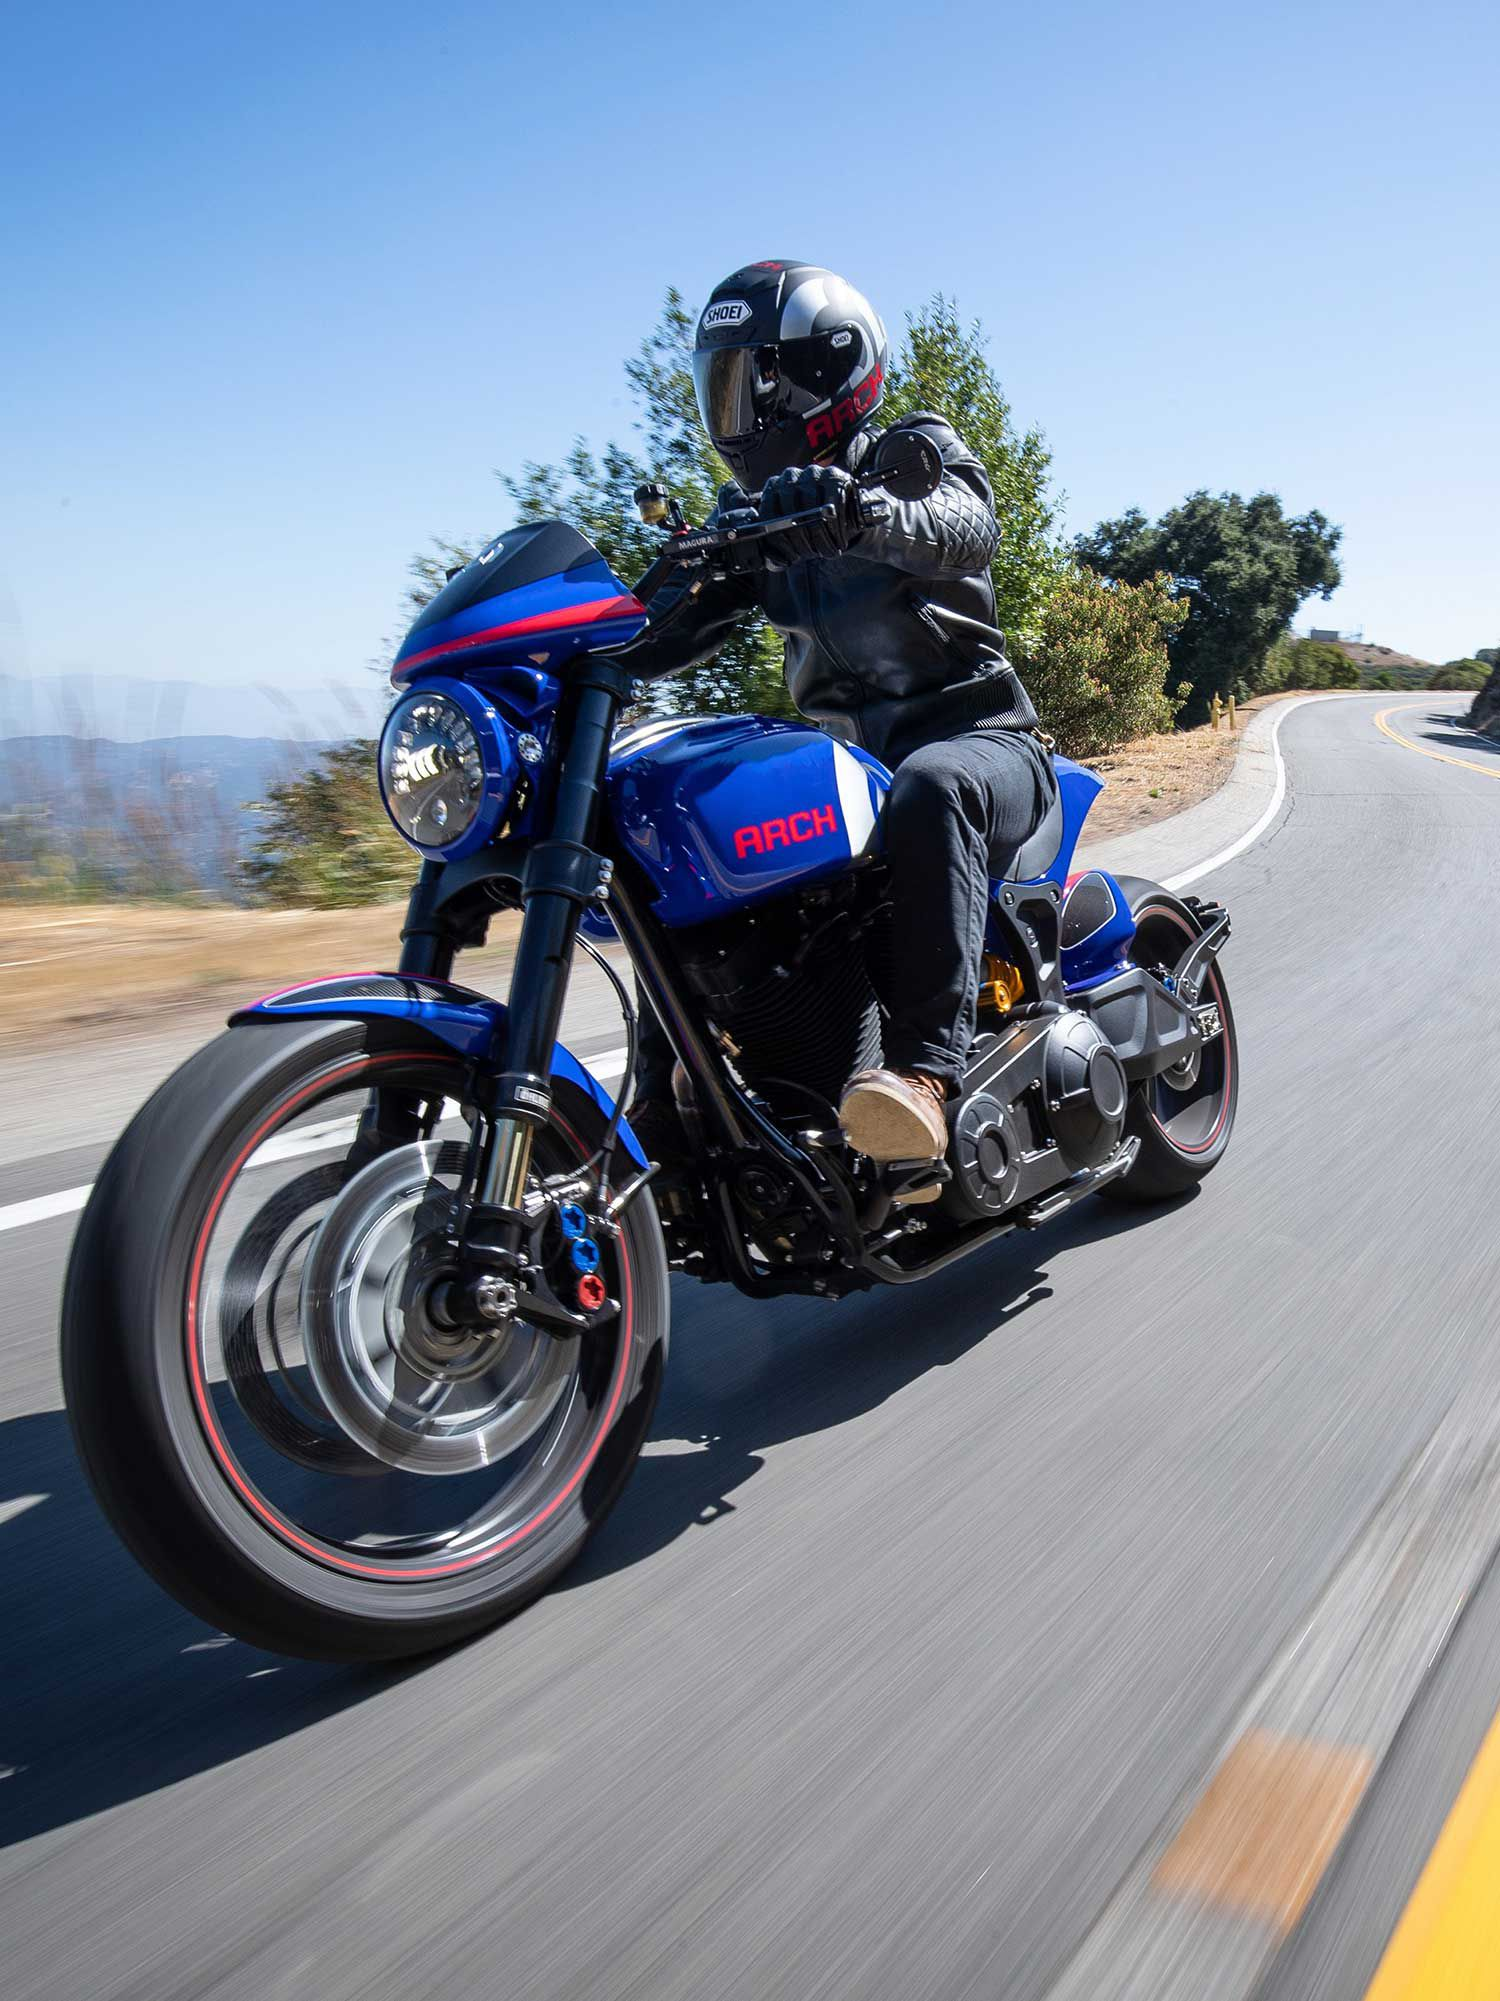 The latest KRGT-1 mixes roadster with touches of café racer, but at its heart is still that monster S&S 124ci V-twin motor that screams hot rod.